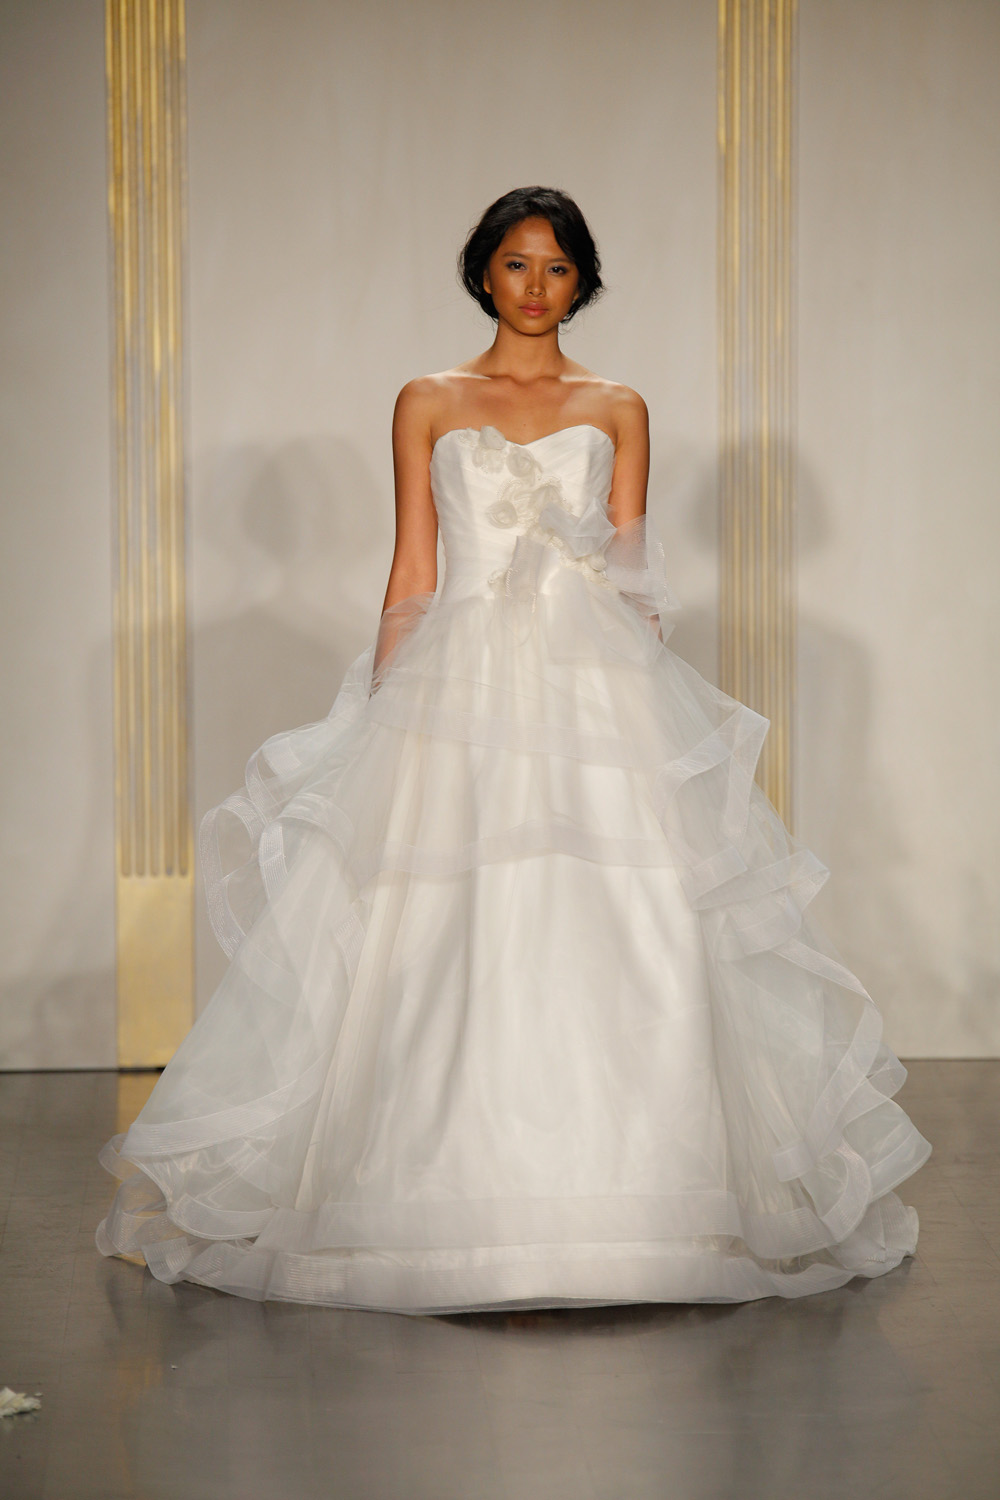 JLM Couture Bridal Show Spring 2012, 123 West 18th Street, NYC,